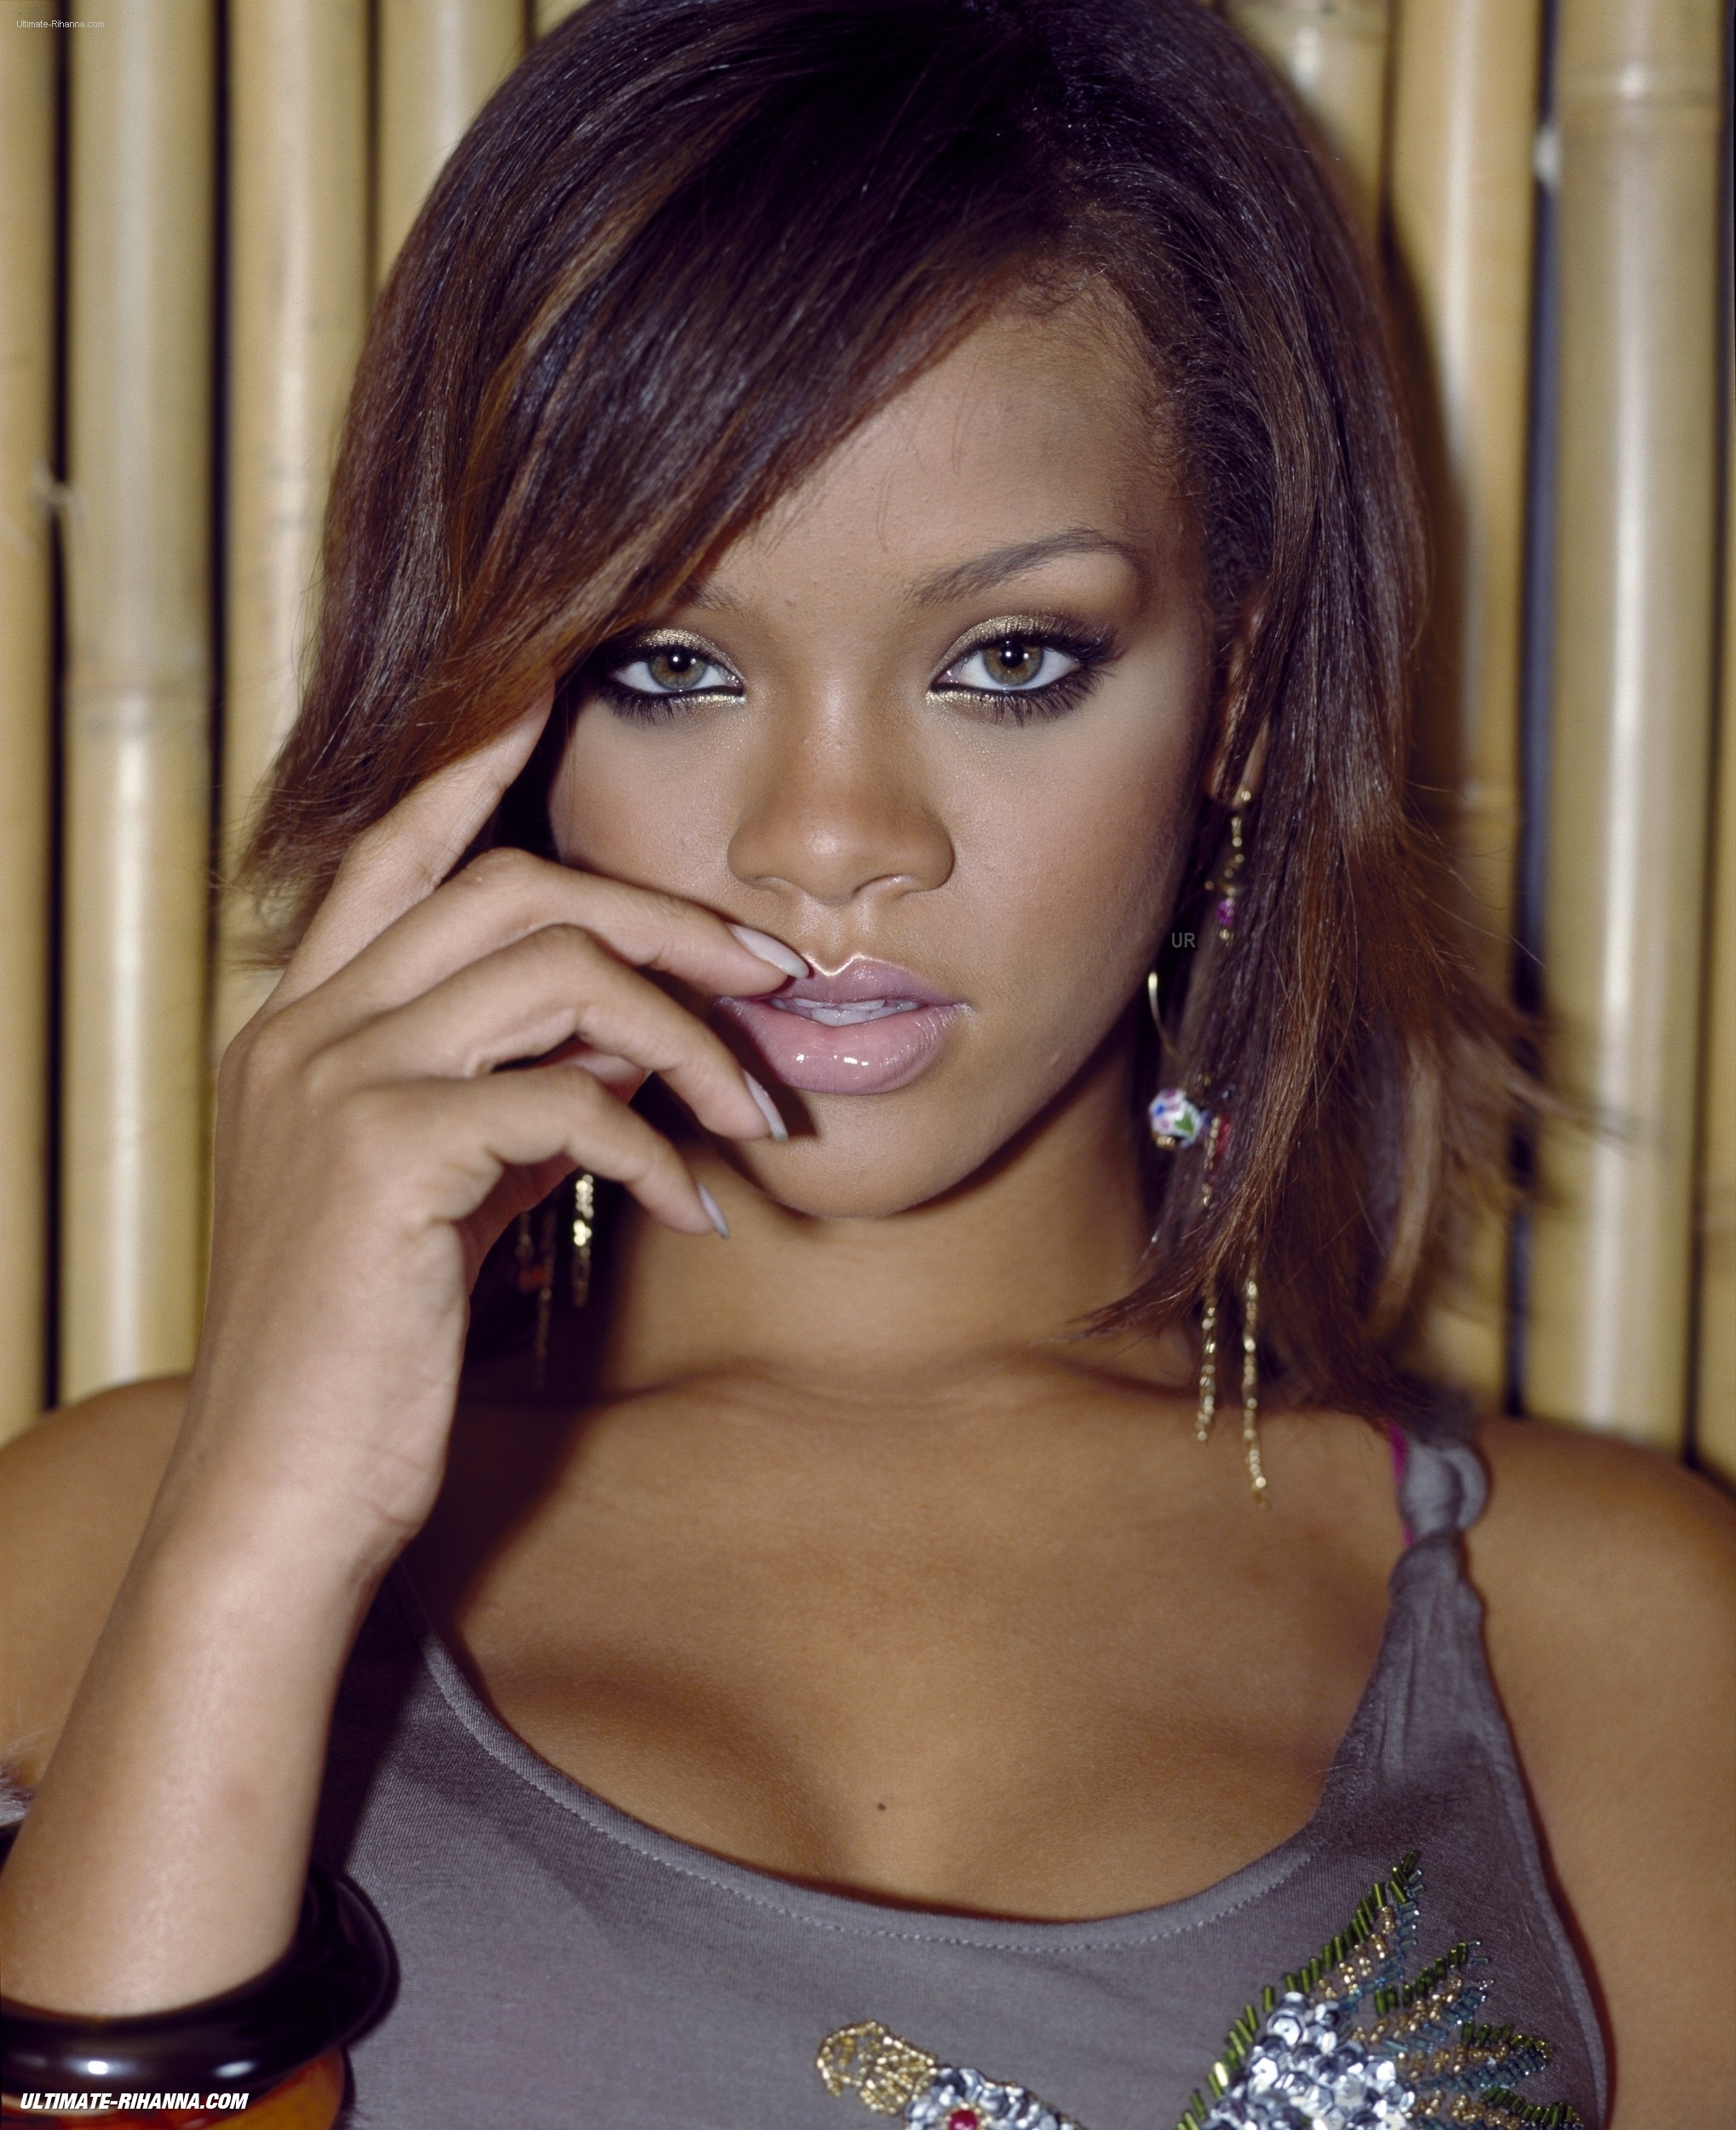 Rihanna - Rihanna Photo (12855835) - Fanpop Rihanna